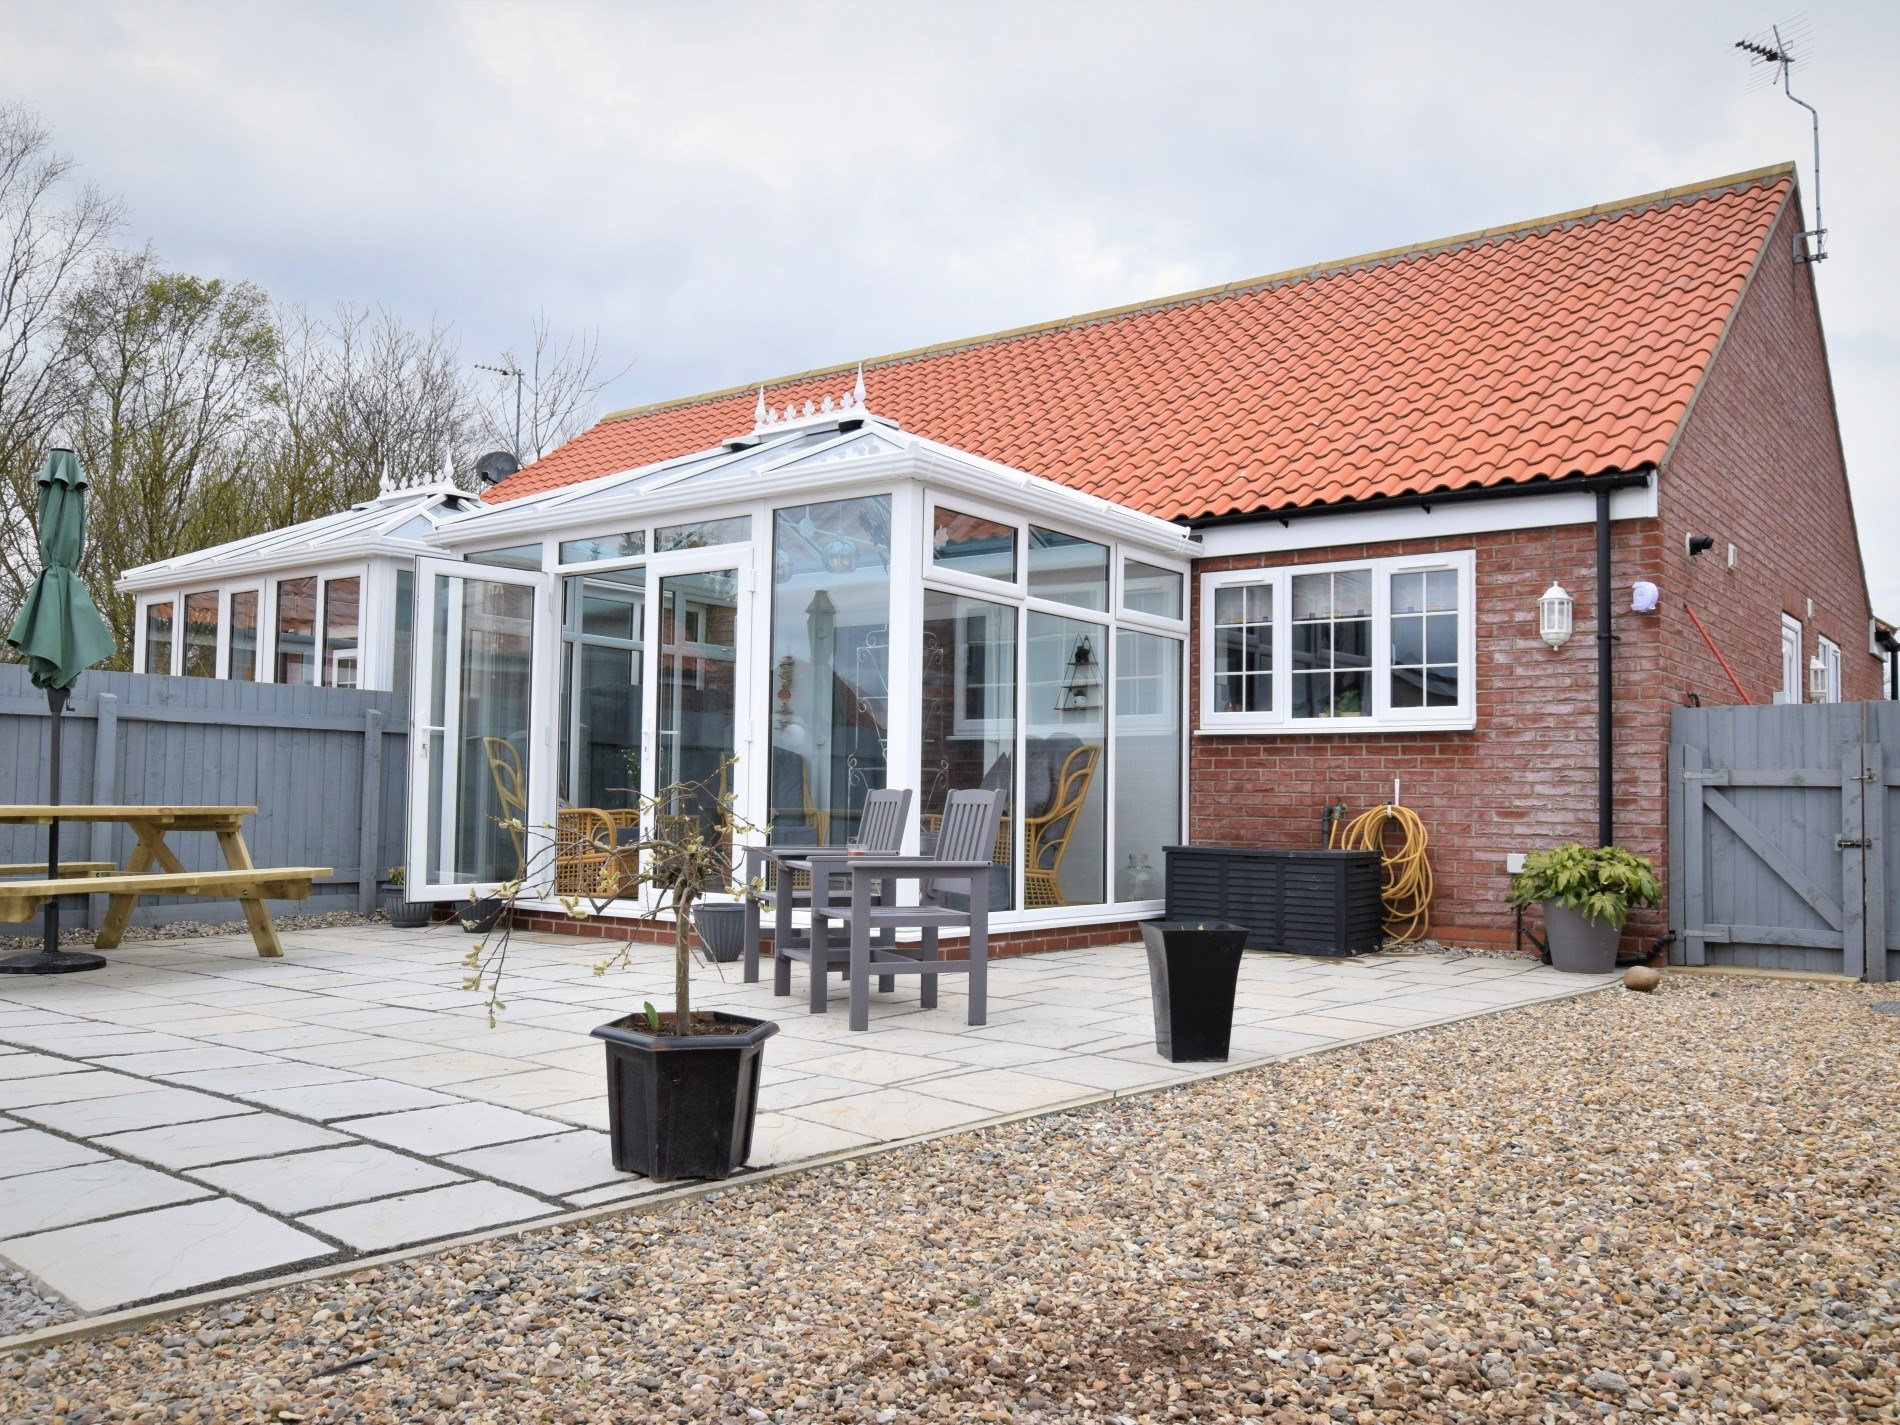 2 Bedroom Bungalow in East Riding, North York Moors and Coast